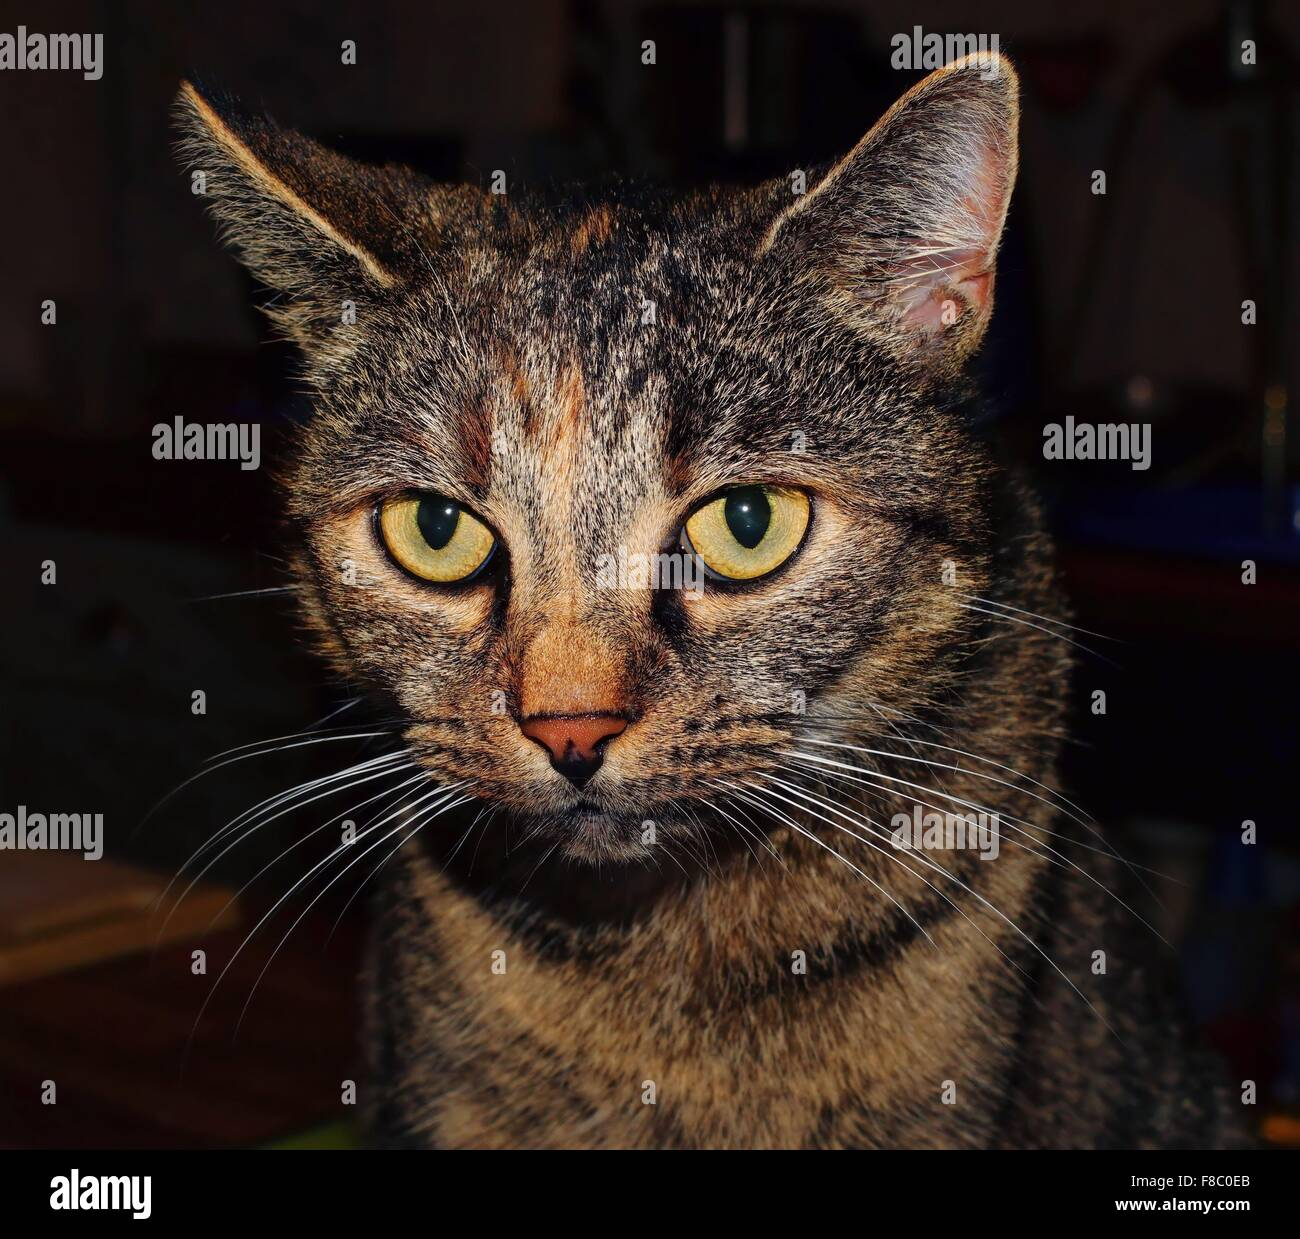 Close-up of a tabby cat indoors - Stock Image